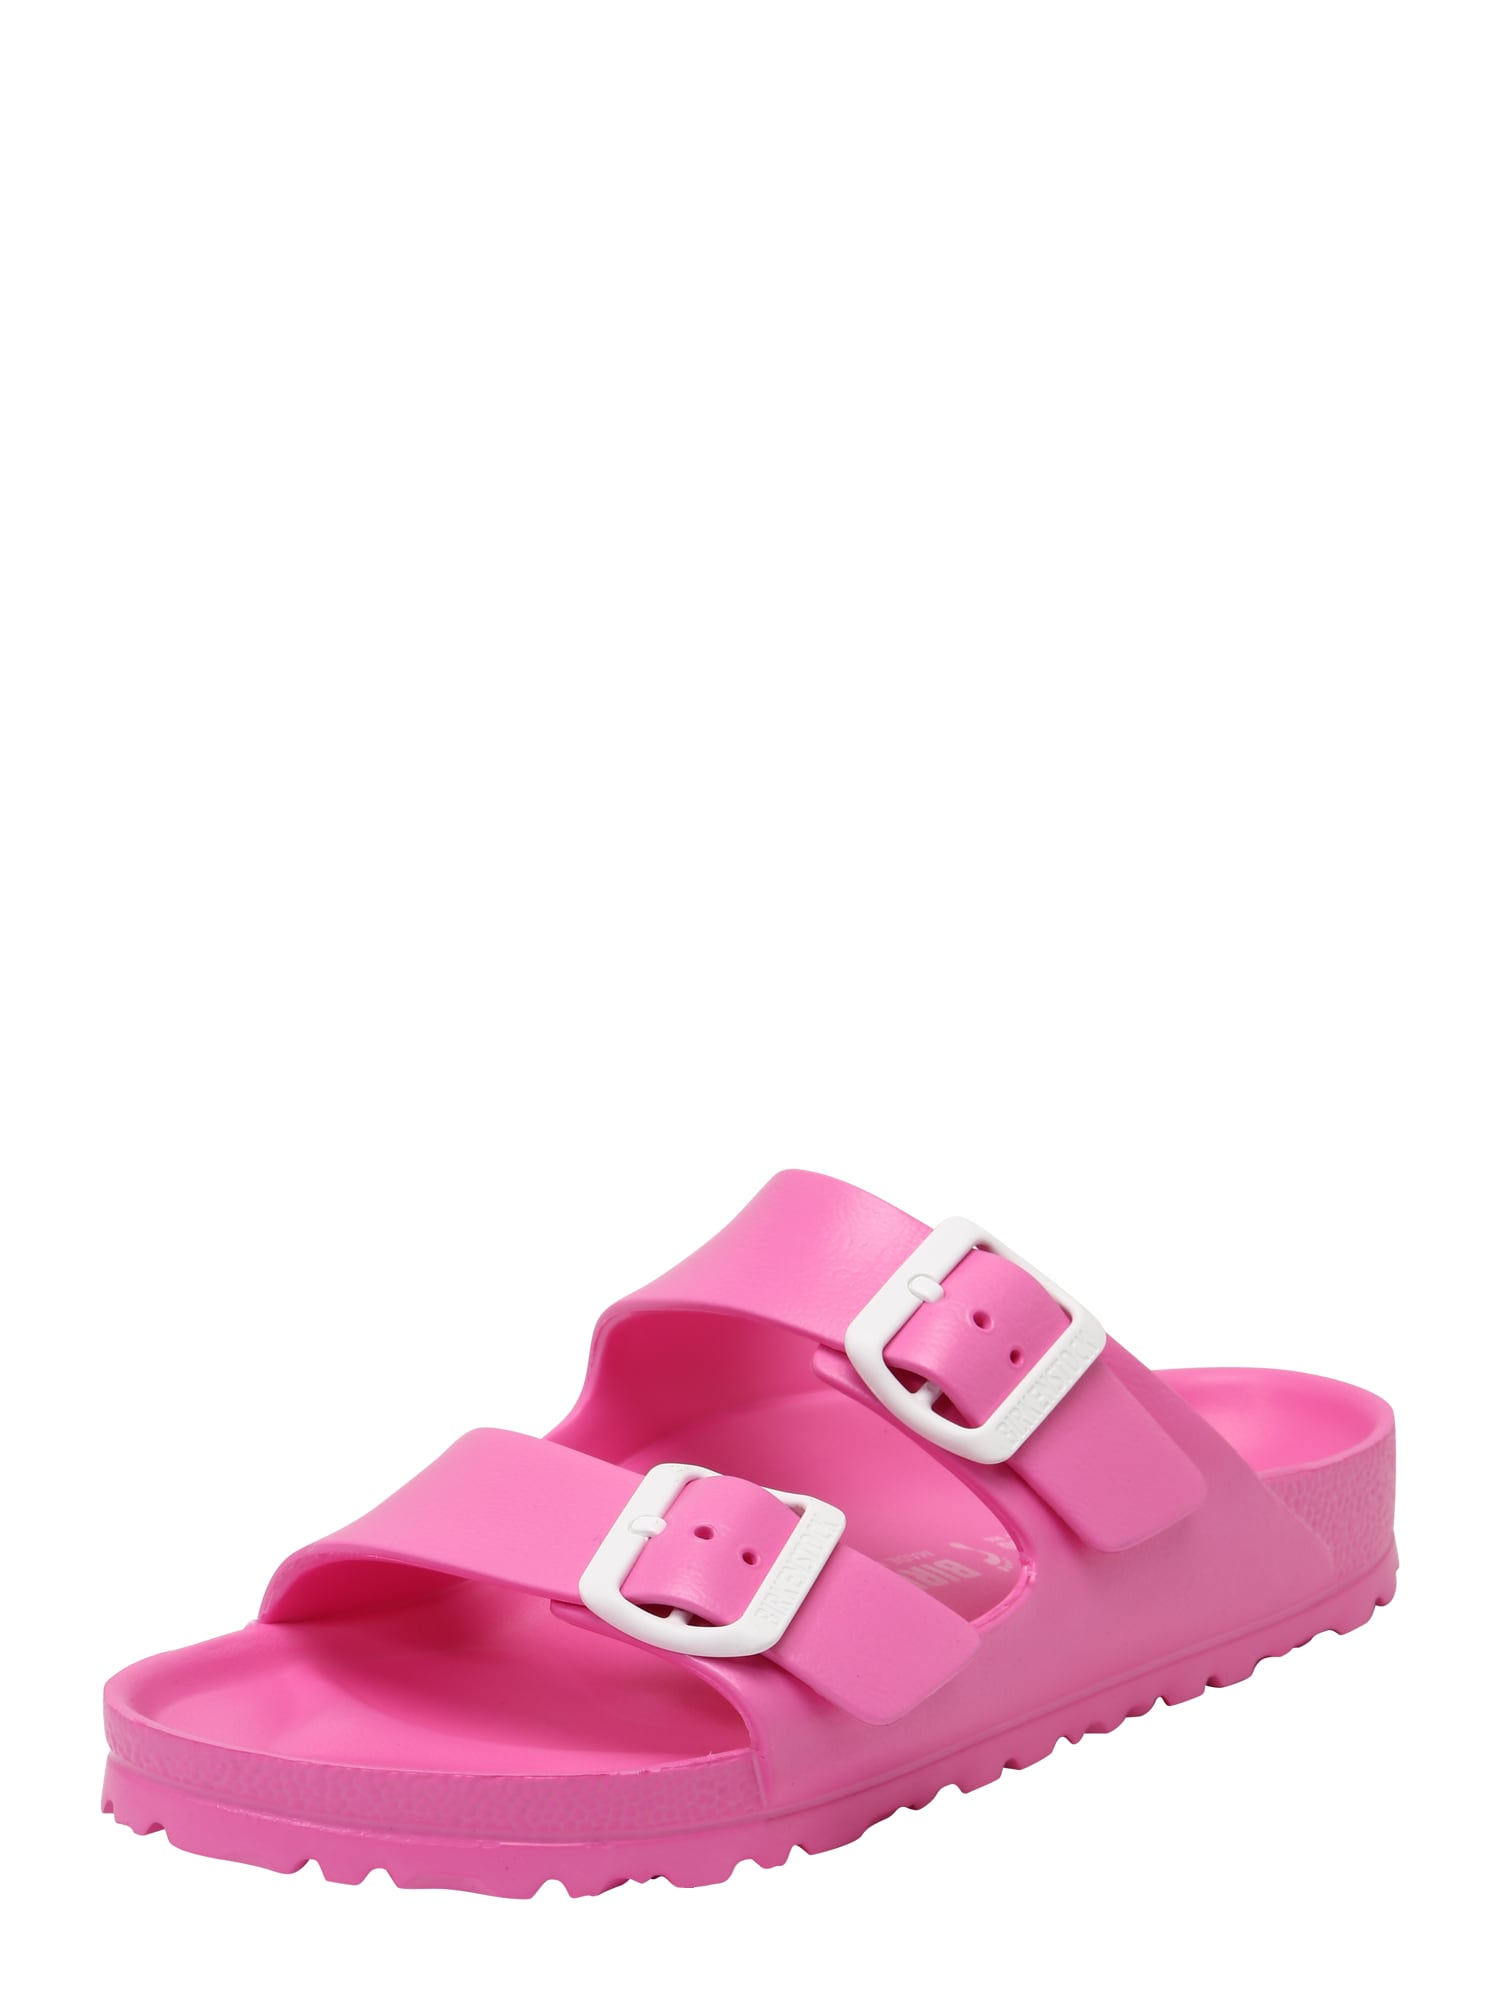 Pantofle Arizona pink BIRKENSTOCK